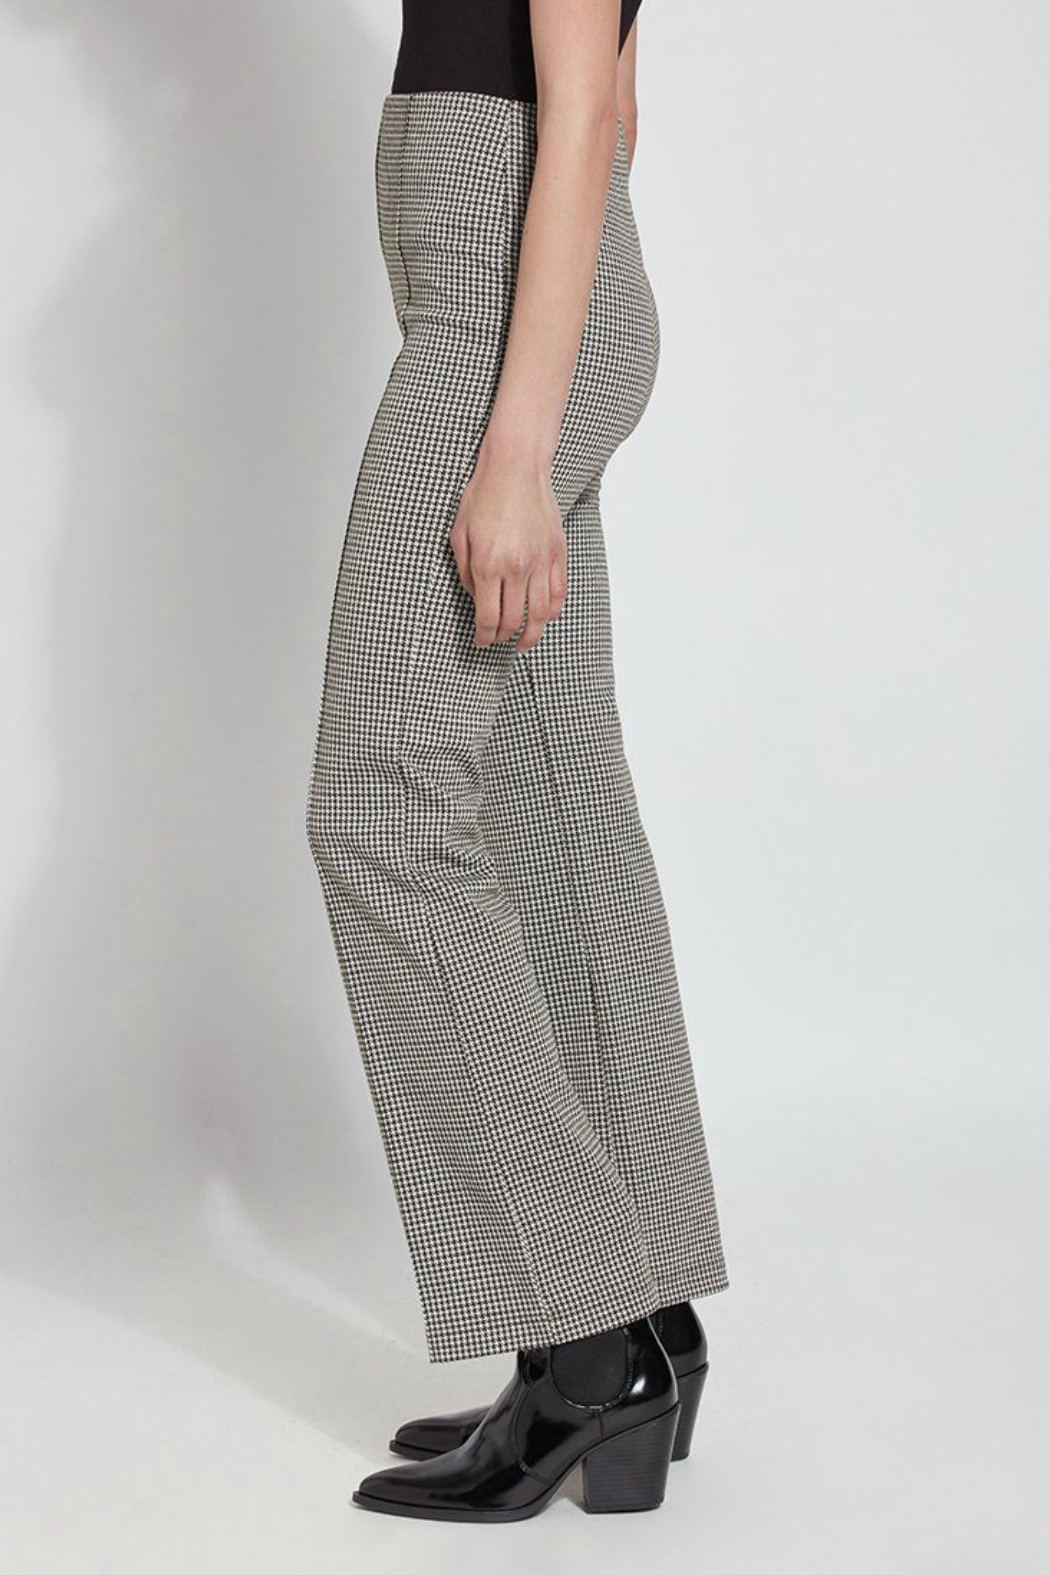 Lysse Elysse Houndstooth Bootcut Pull-on Pant - Front Full Image